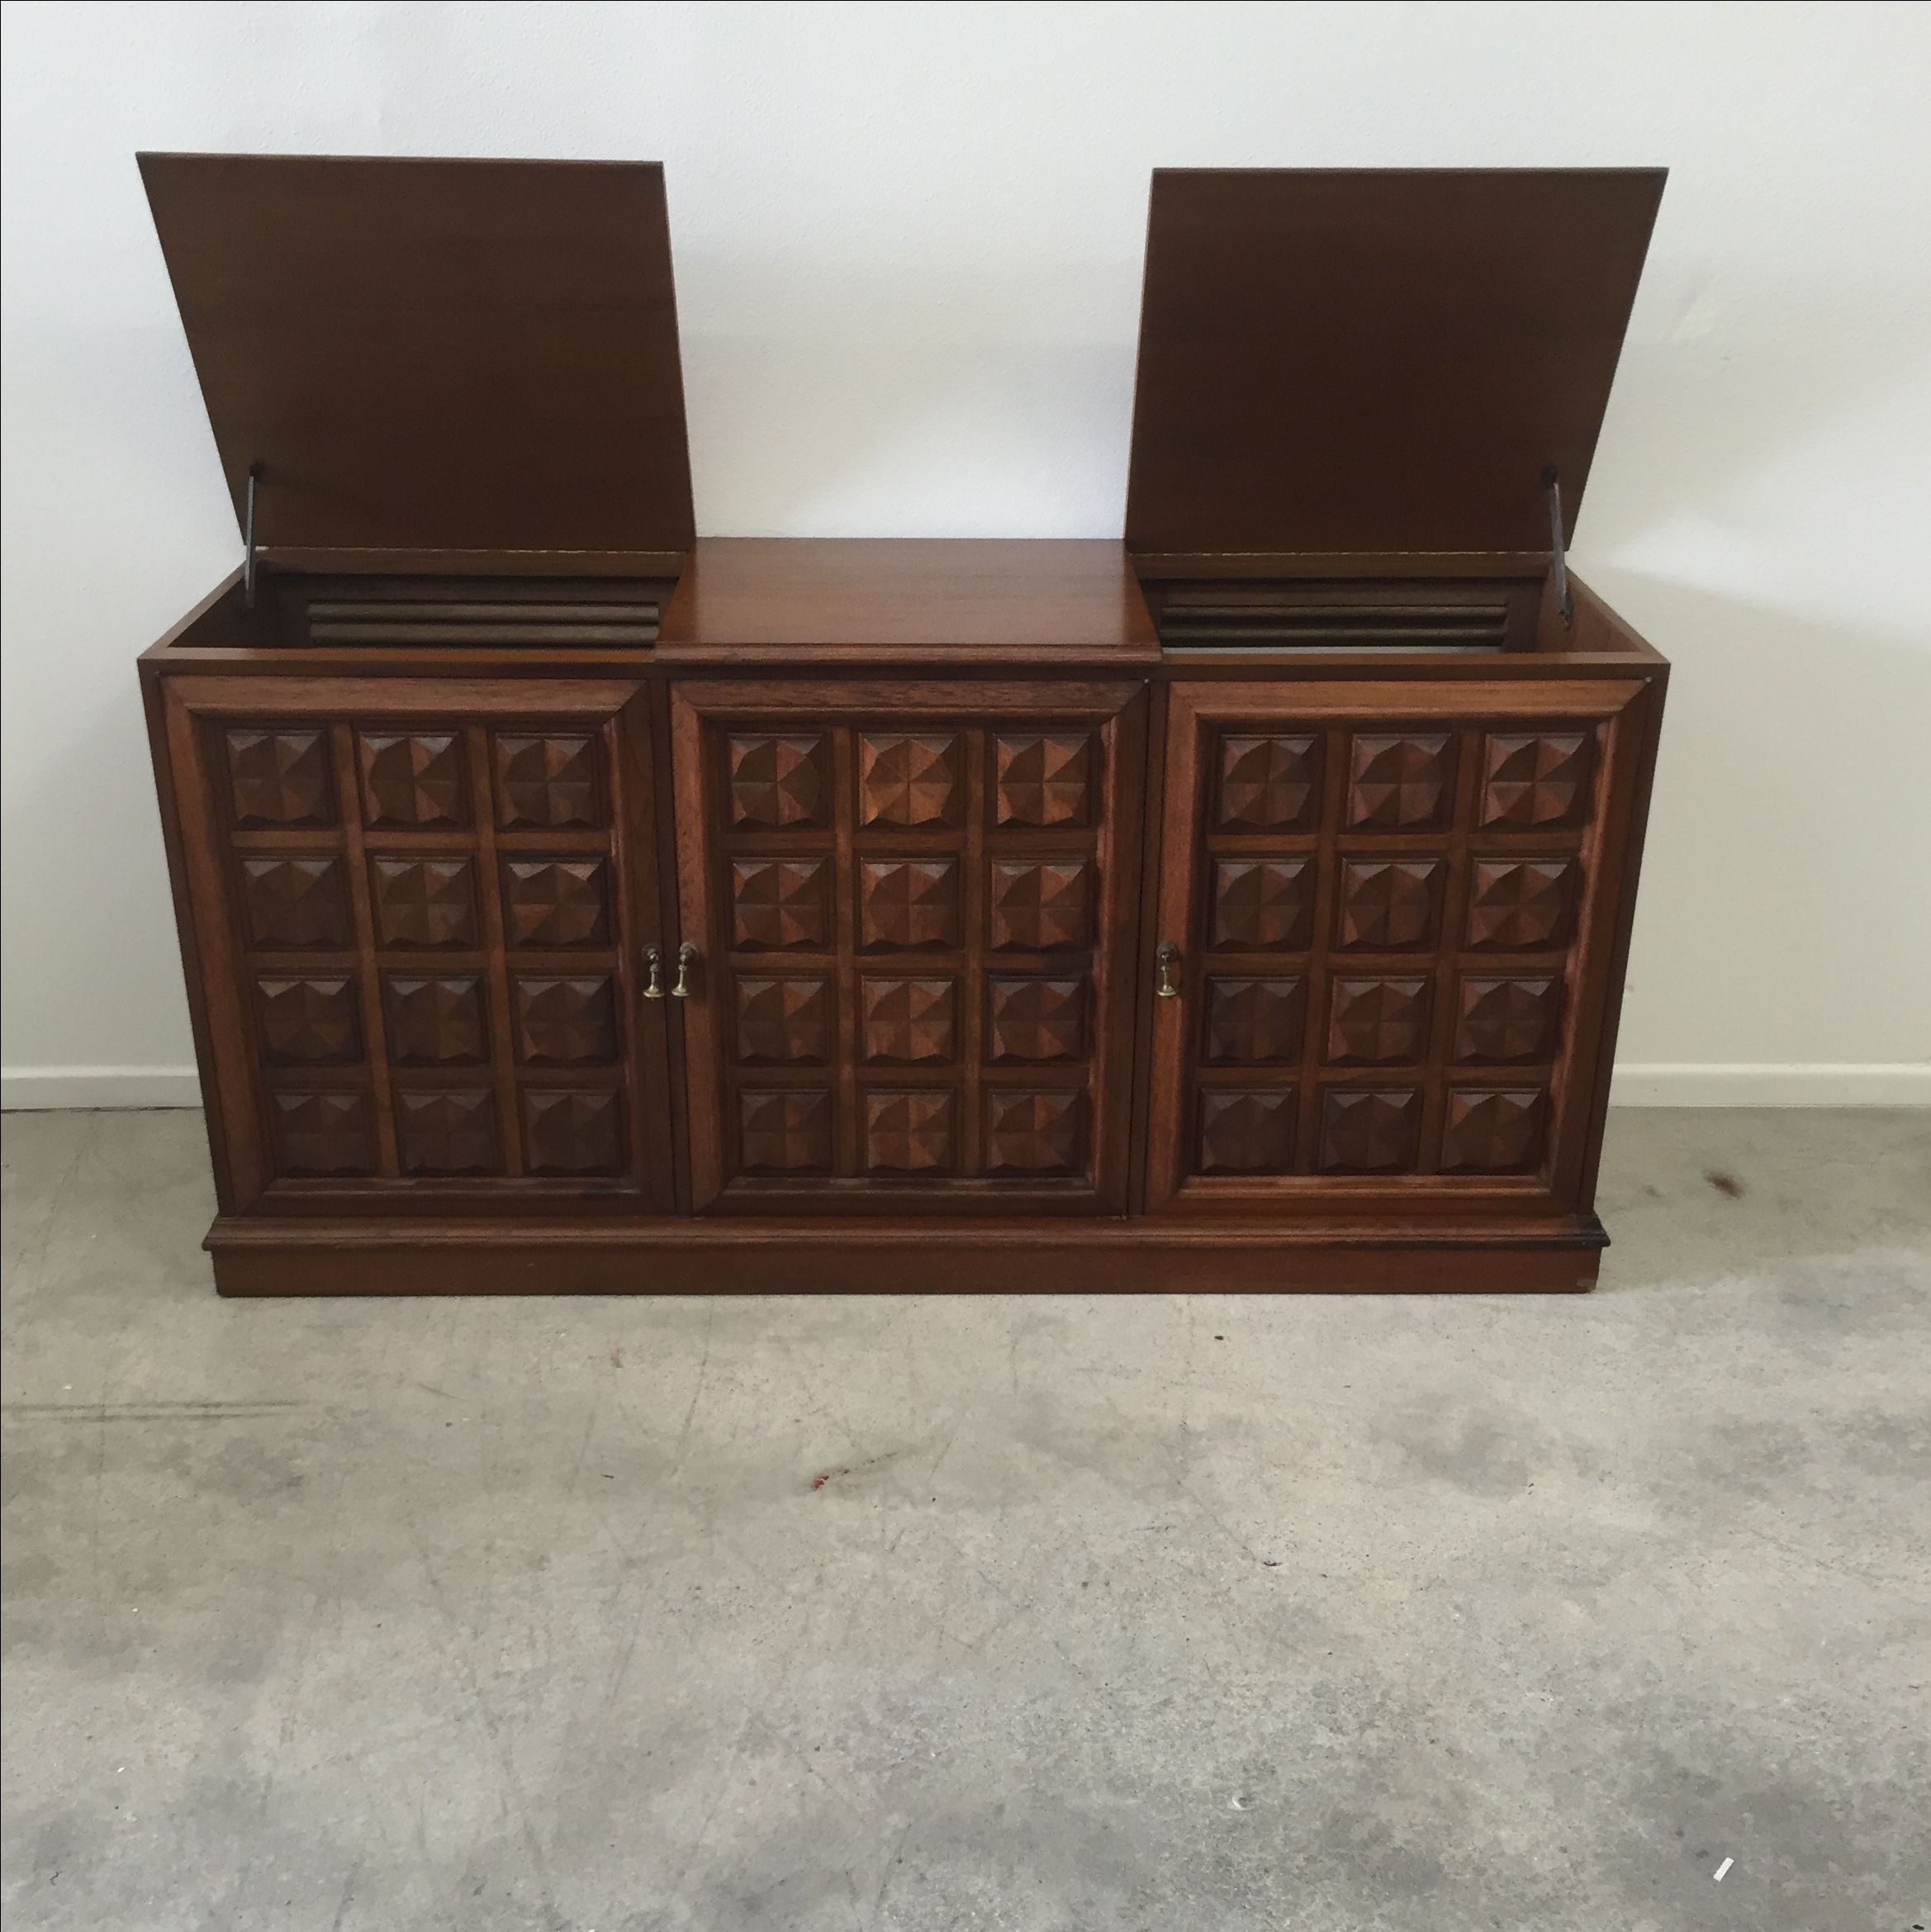 Attrayant Mid Century Credenza Stereo Cabinet   Image 11 Of 11